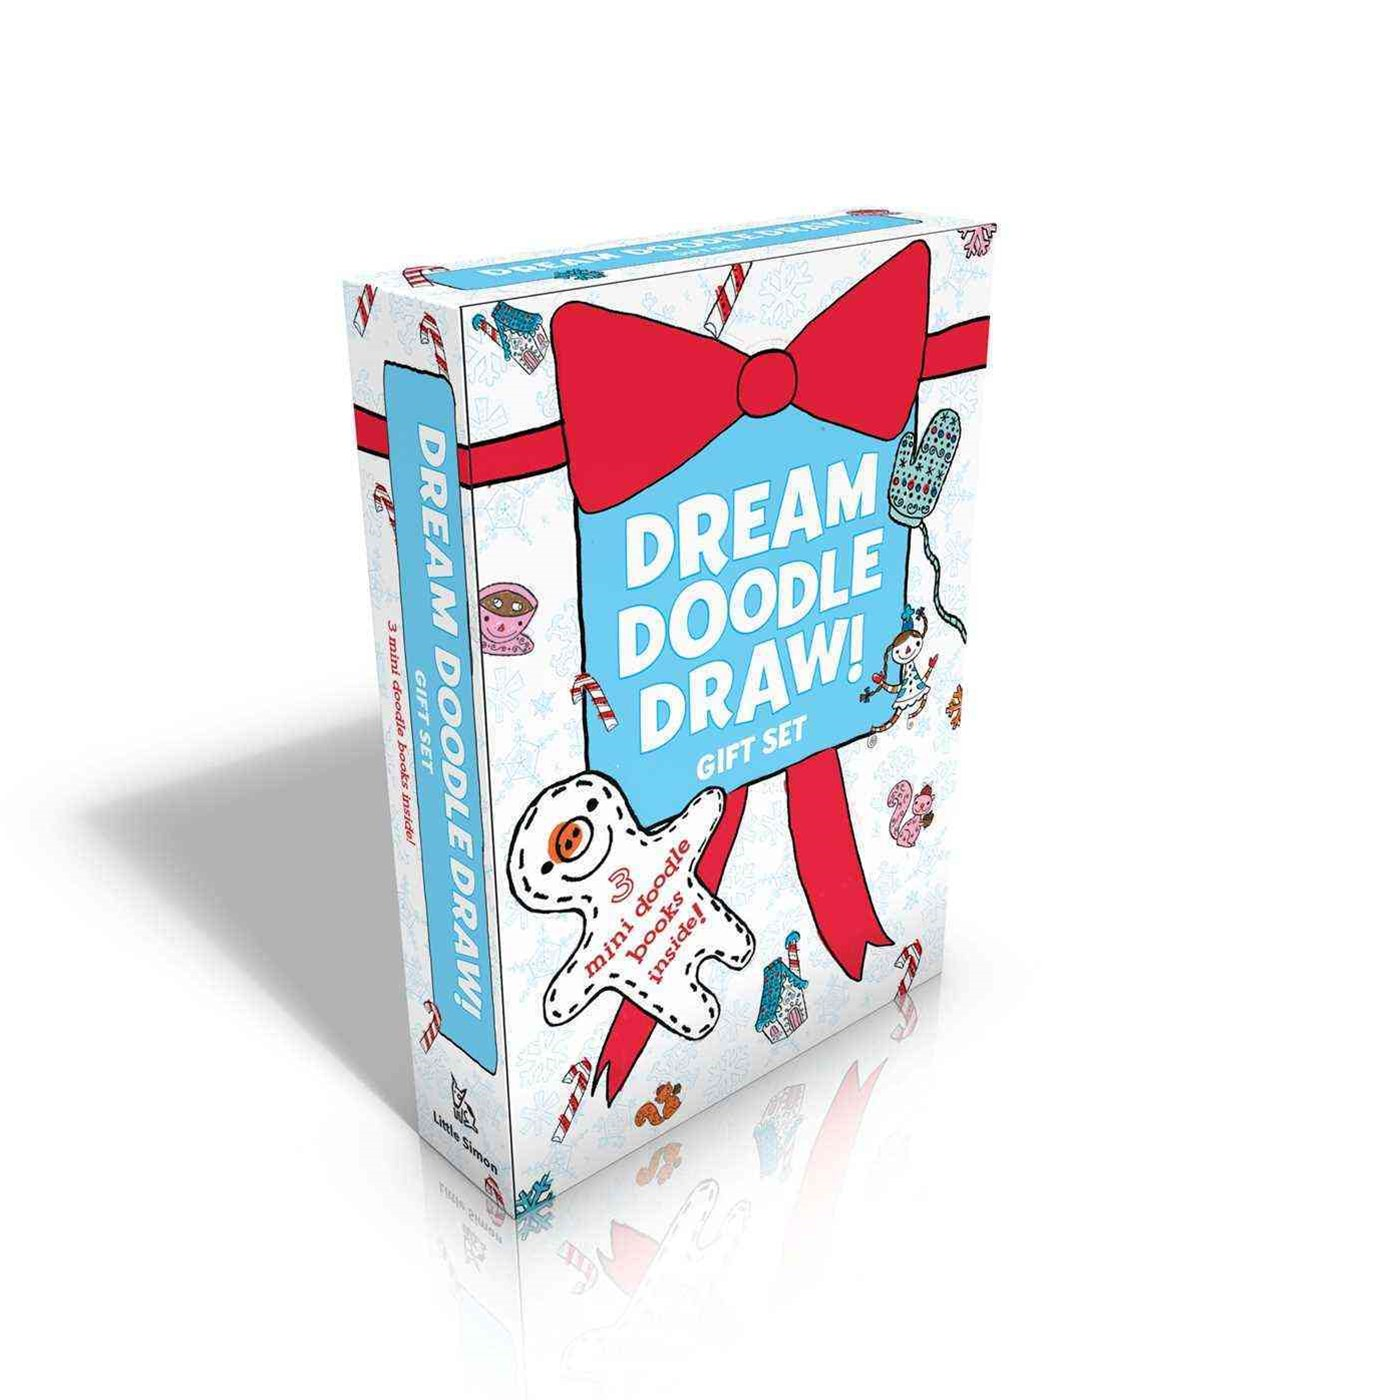 Dream Doodle Draw! Gift Set